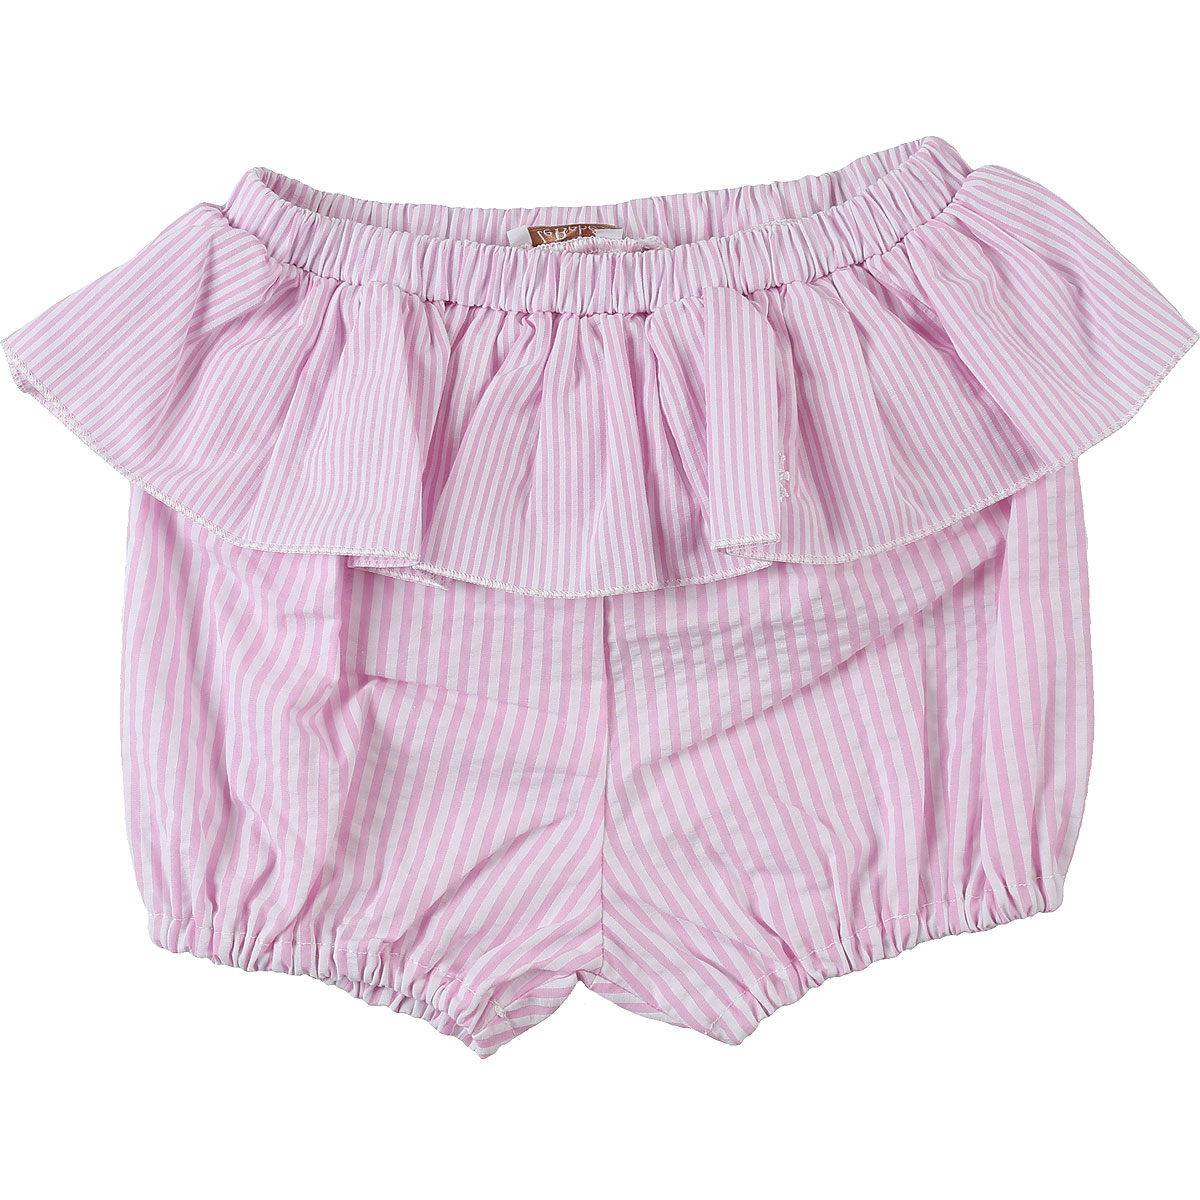 Le Bebe Baby Shorts for Girls, White, Cotton, 2019, 12M 18M 9M